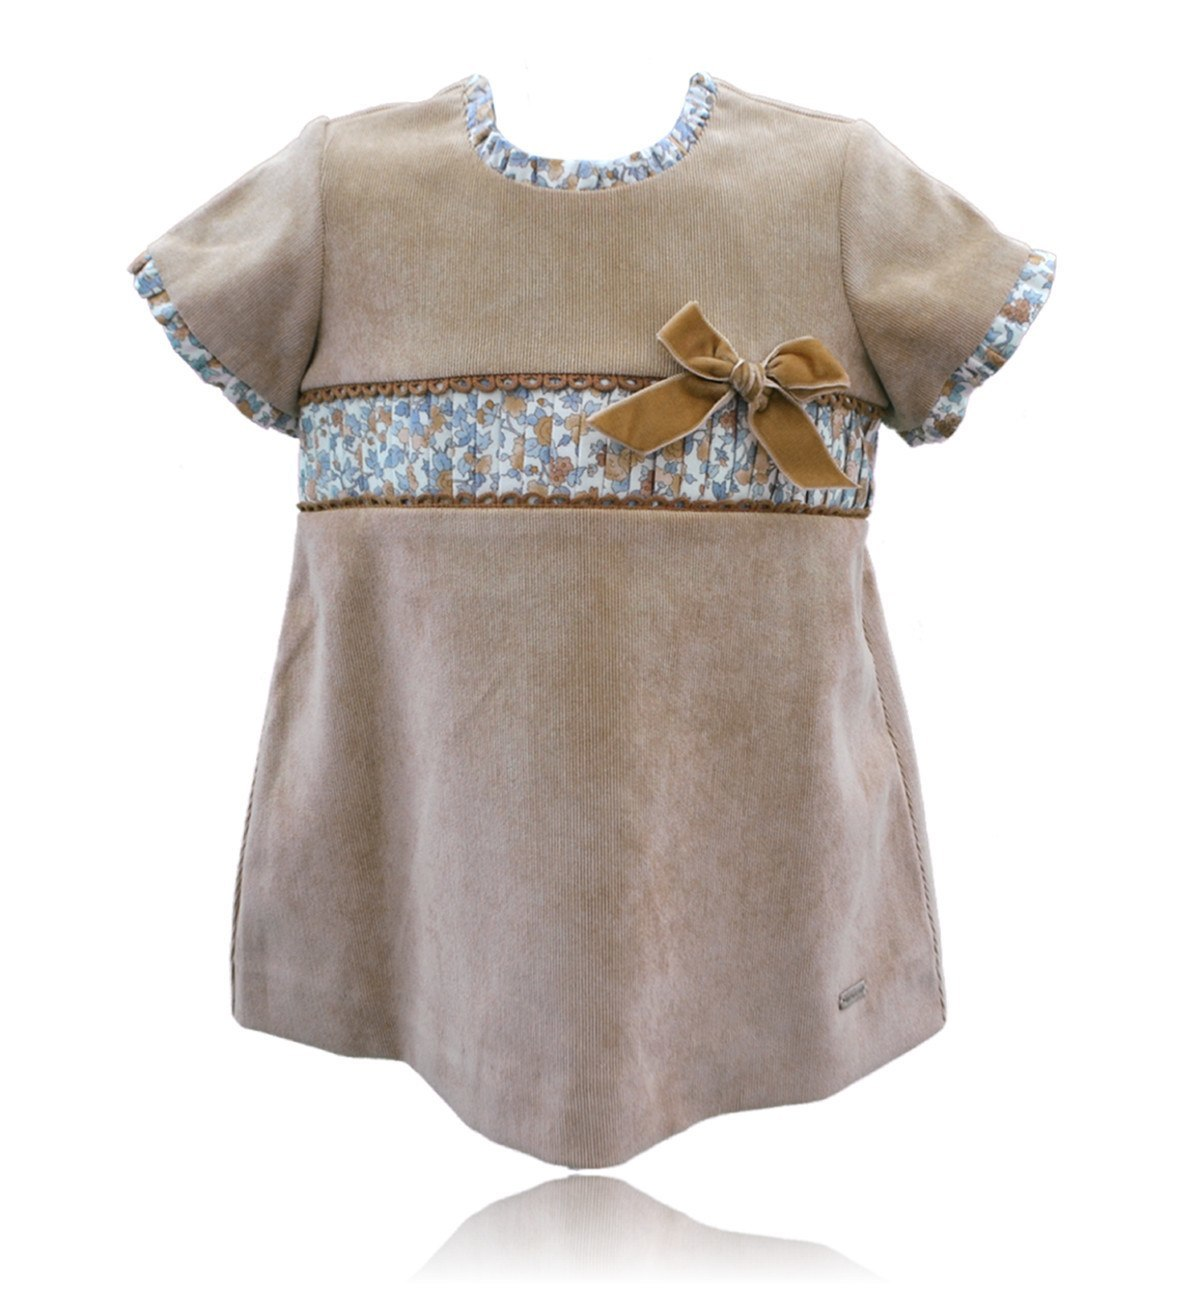 Spanish baby clothes | baby Dress | Victoria |babymaC  - 1